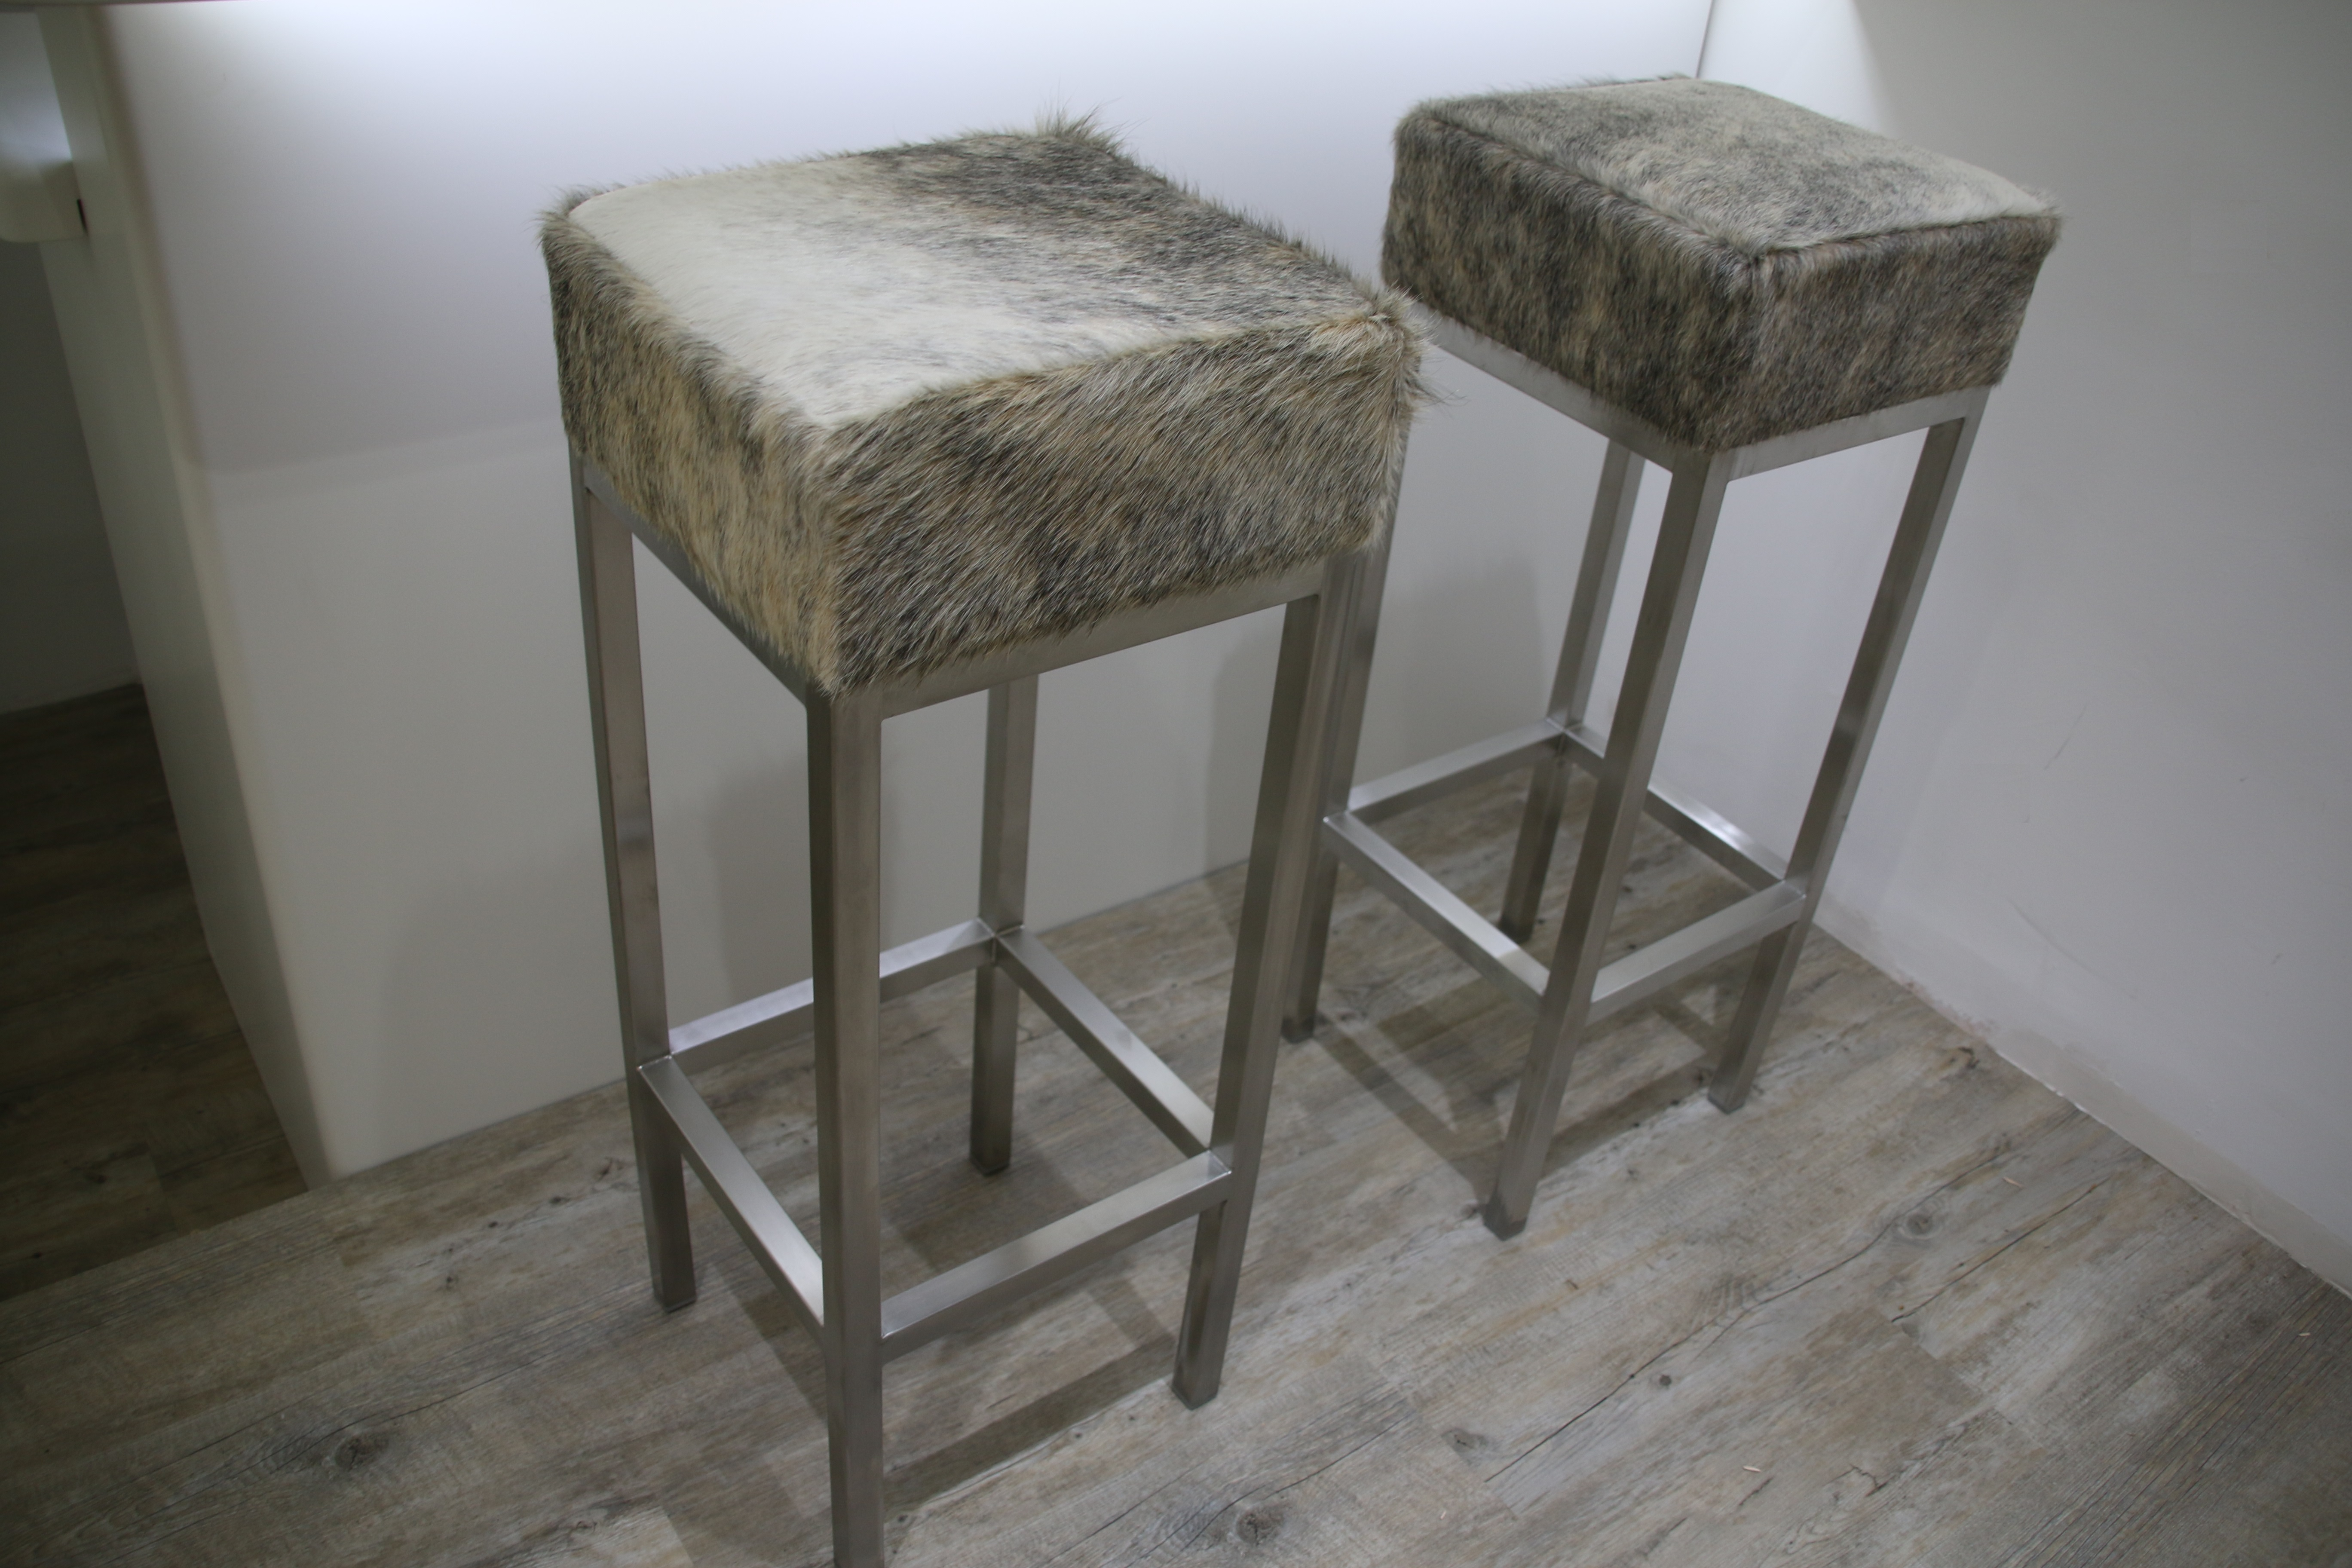 Cowhide Furniture Made To Order By Hide & Stitch